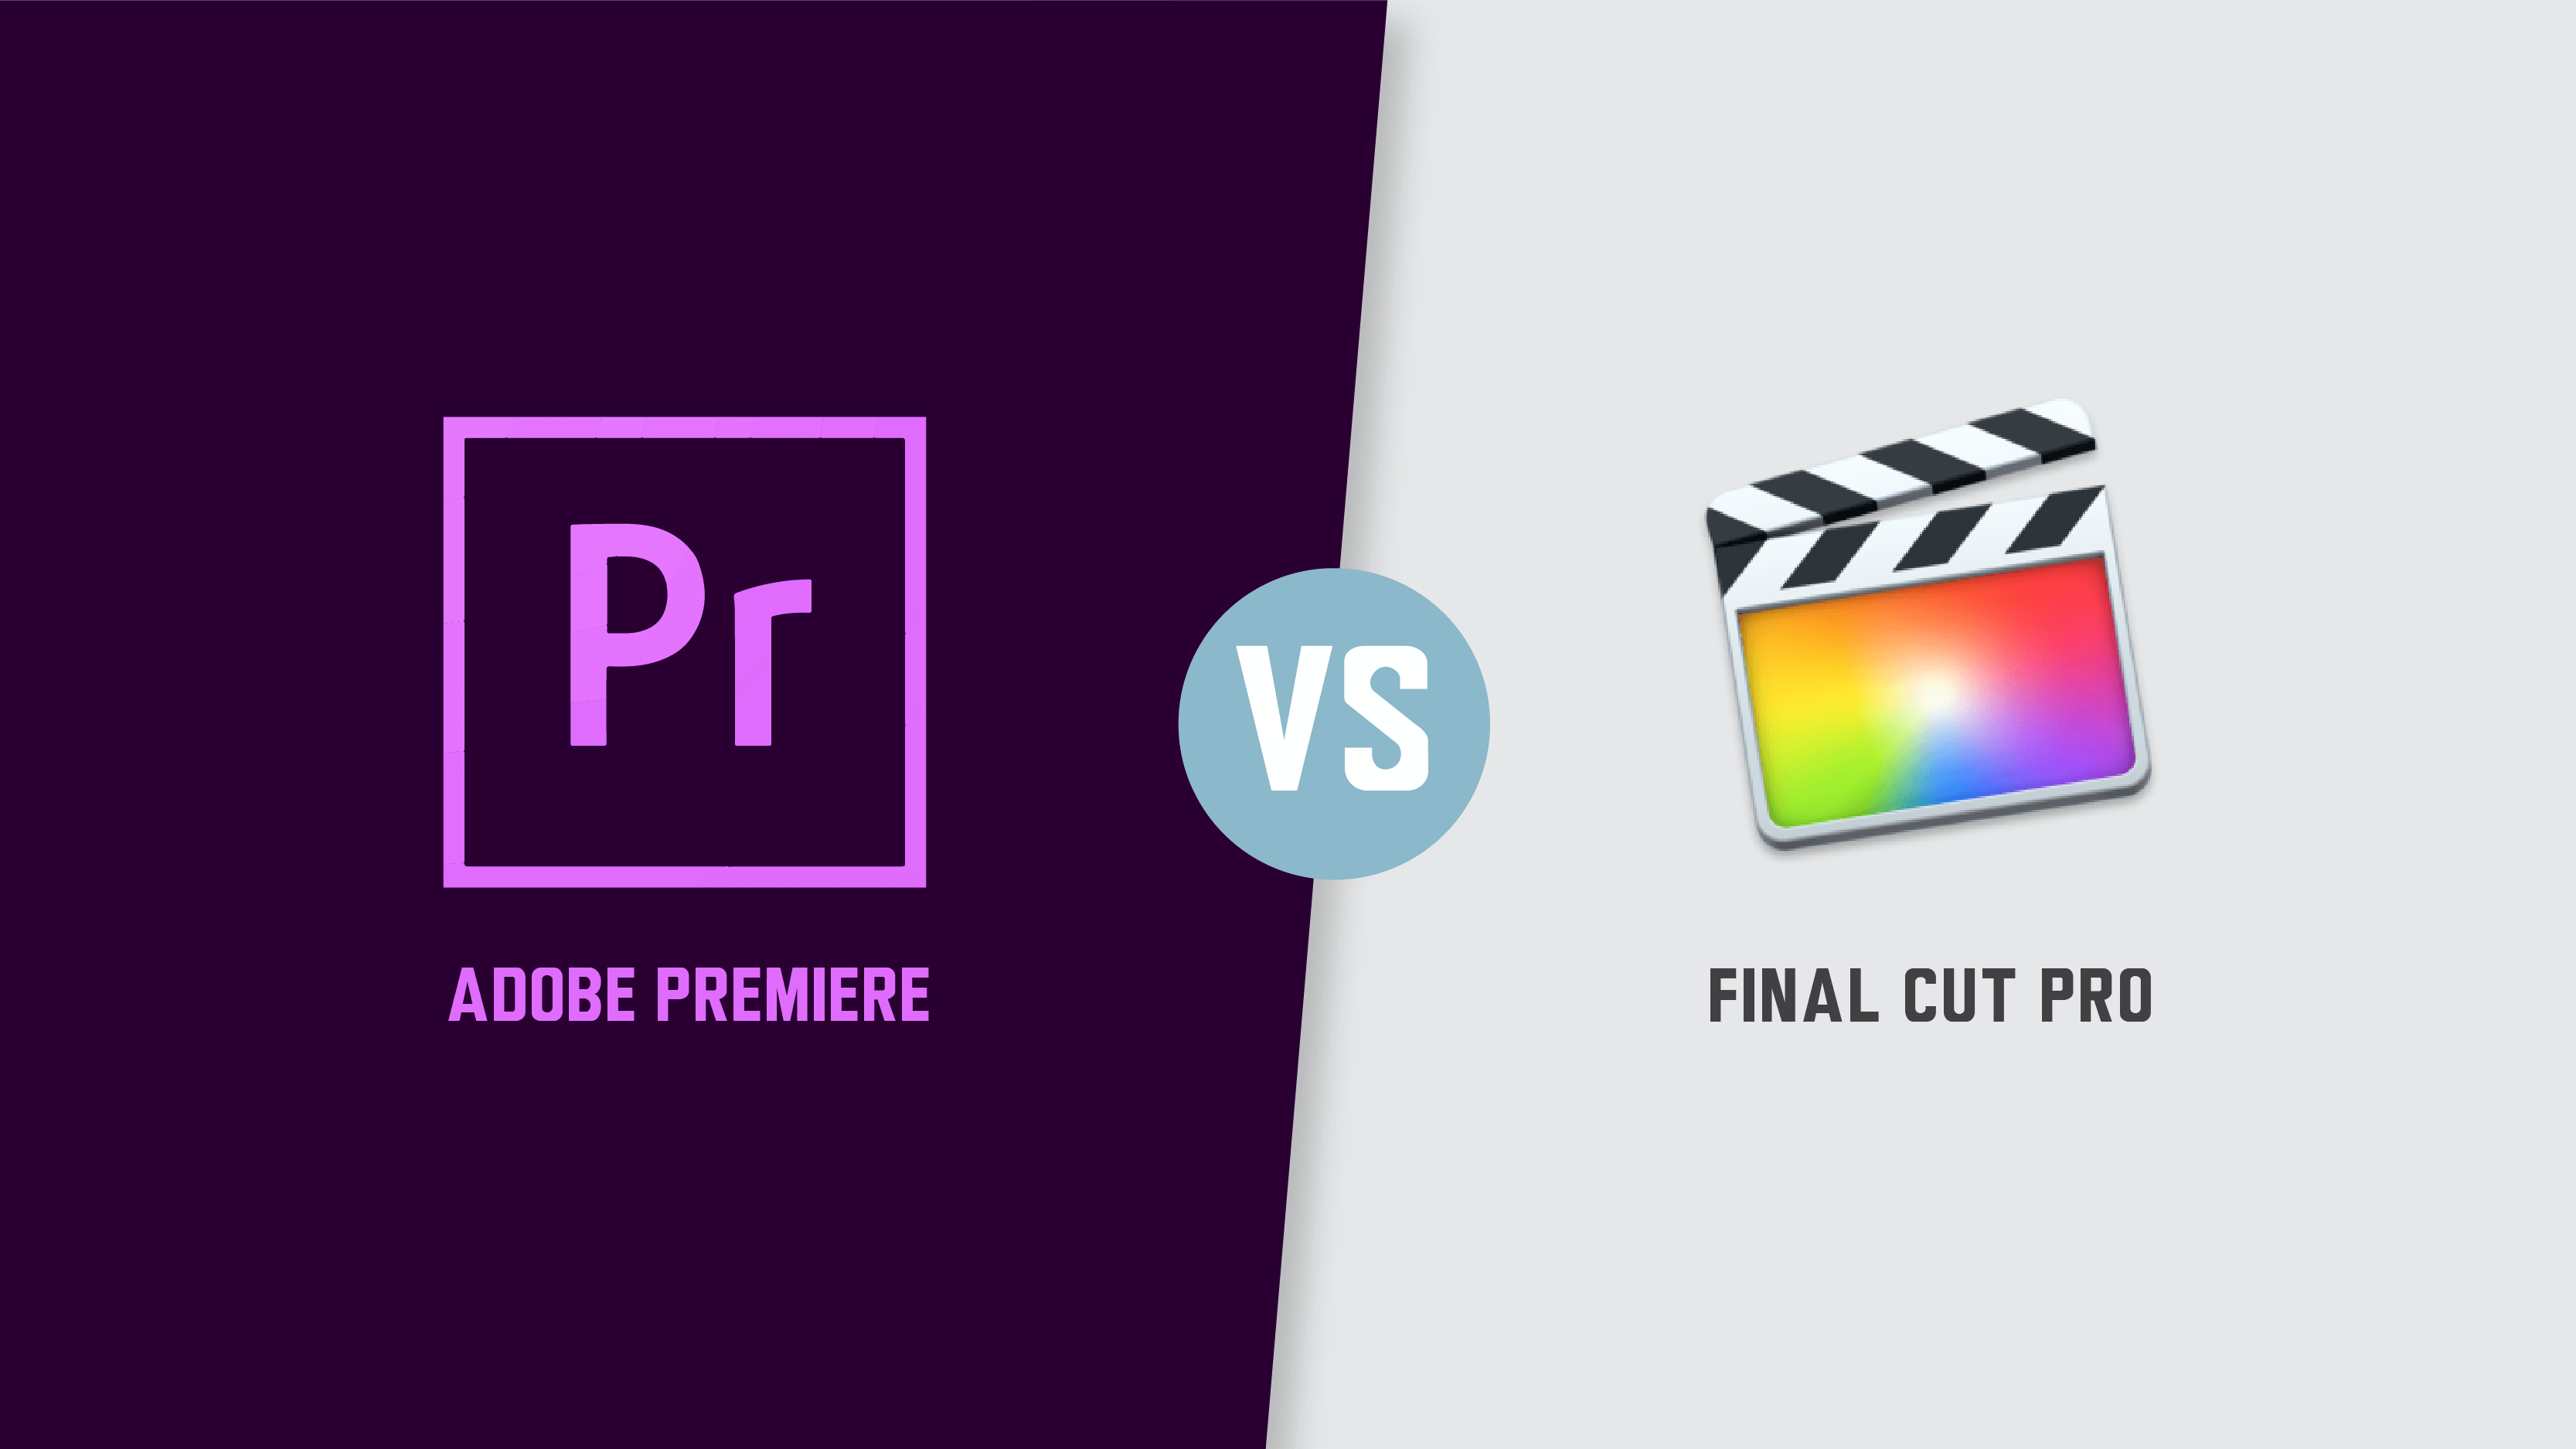 Comparing Adobe Premier to Final Cut Pro